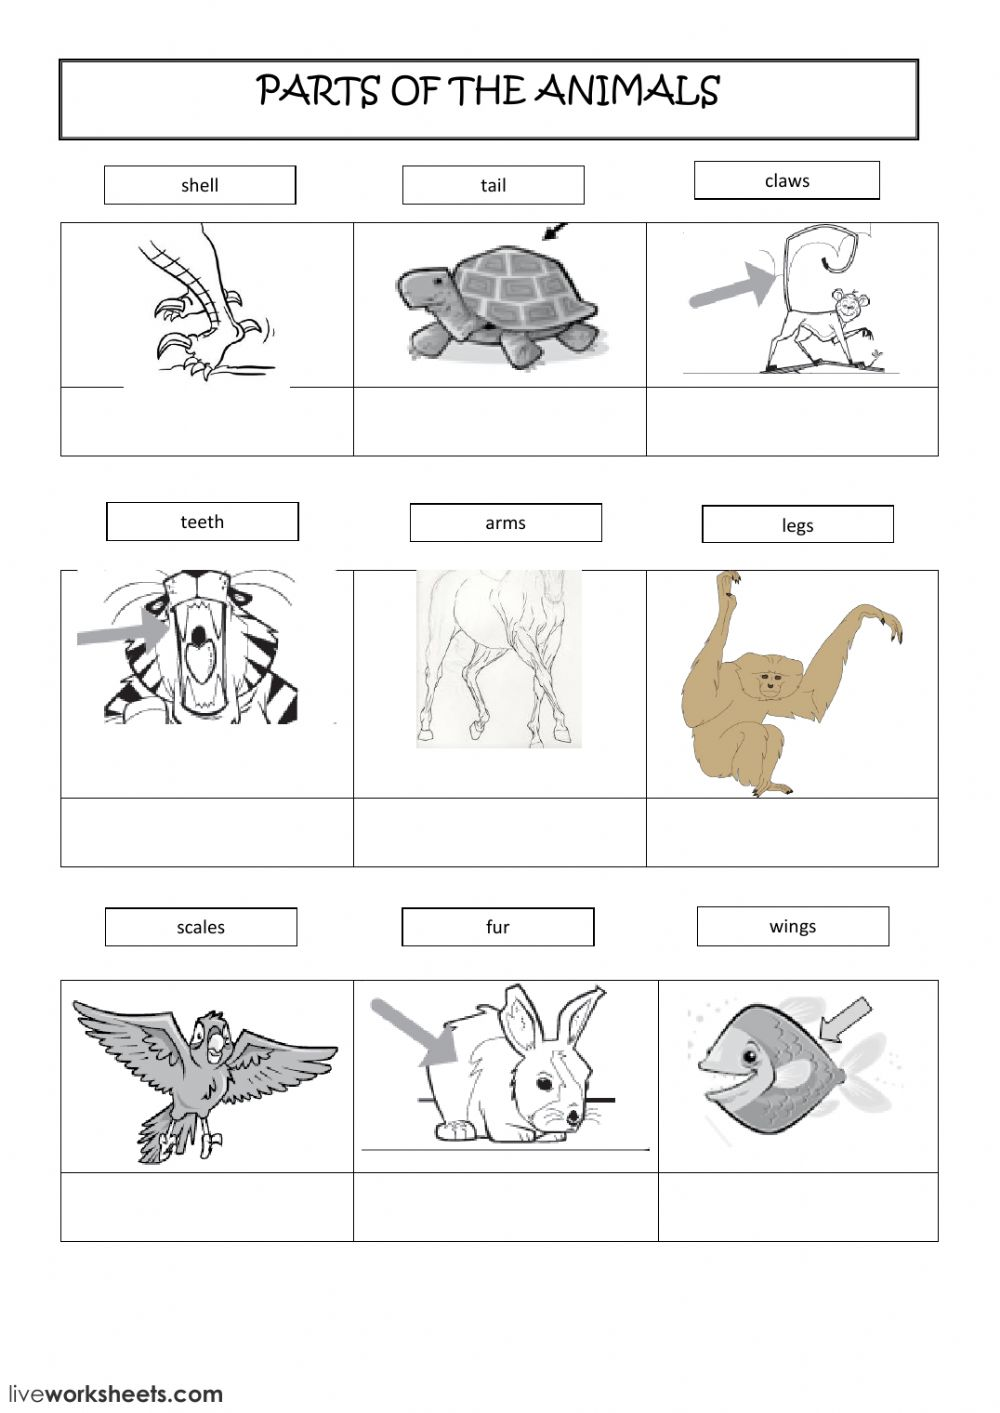 medium resolution of Parts of the animals worksheet